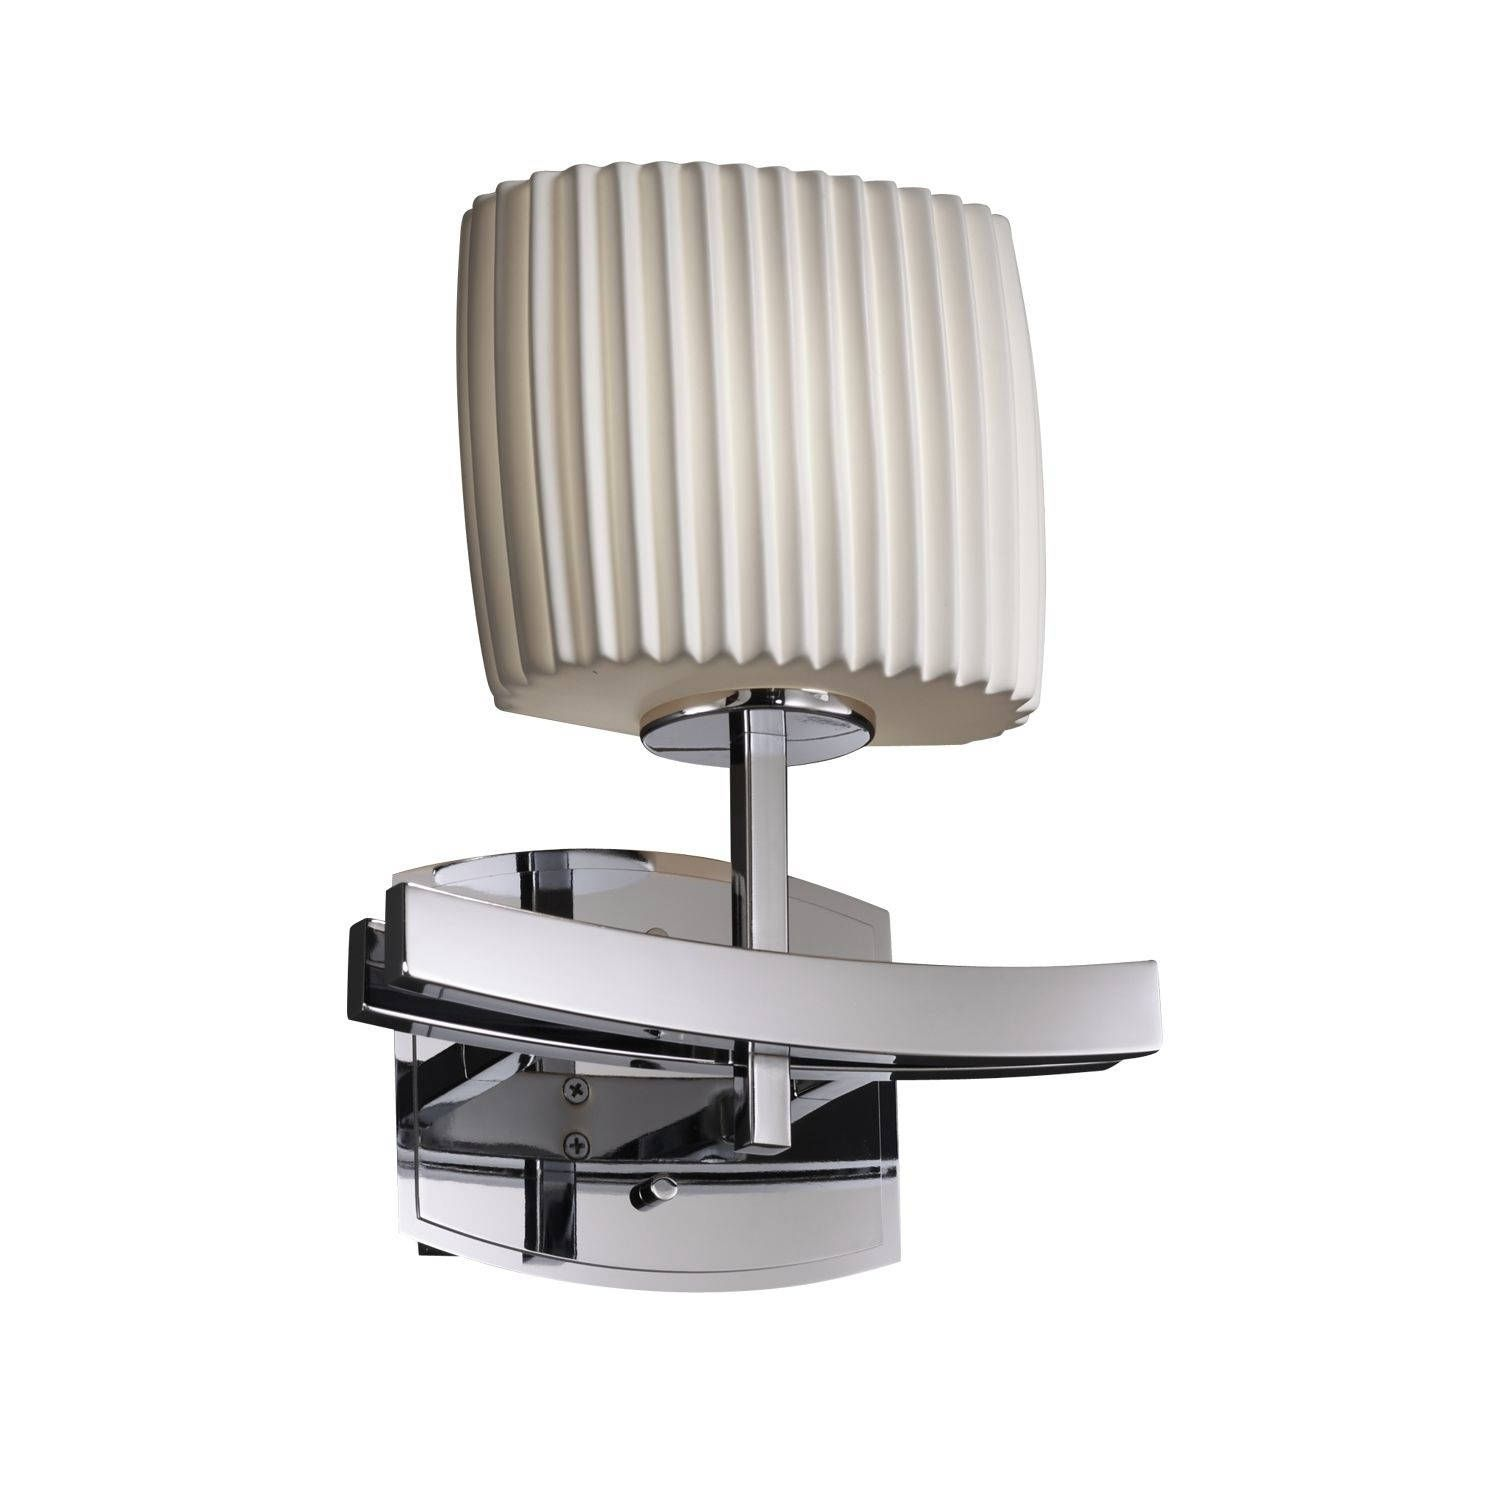 Justice Design Limoges Archway Polished Chrome Wall Sconce, Oval Shade With  Pleats Impressions, Silver (Metal)